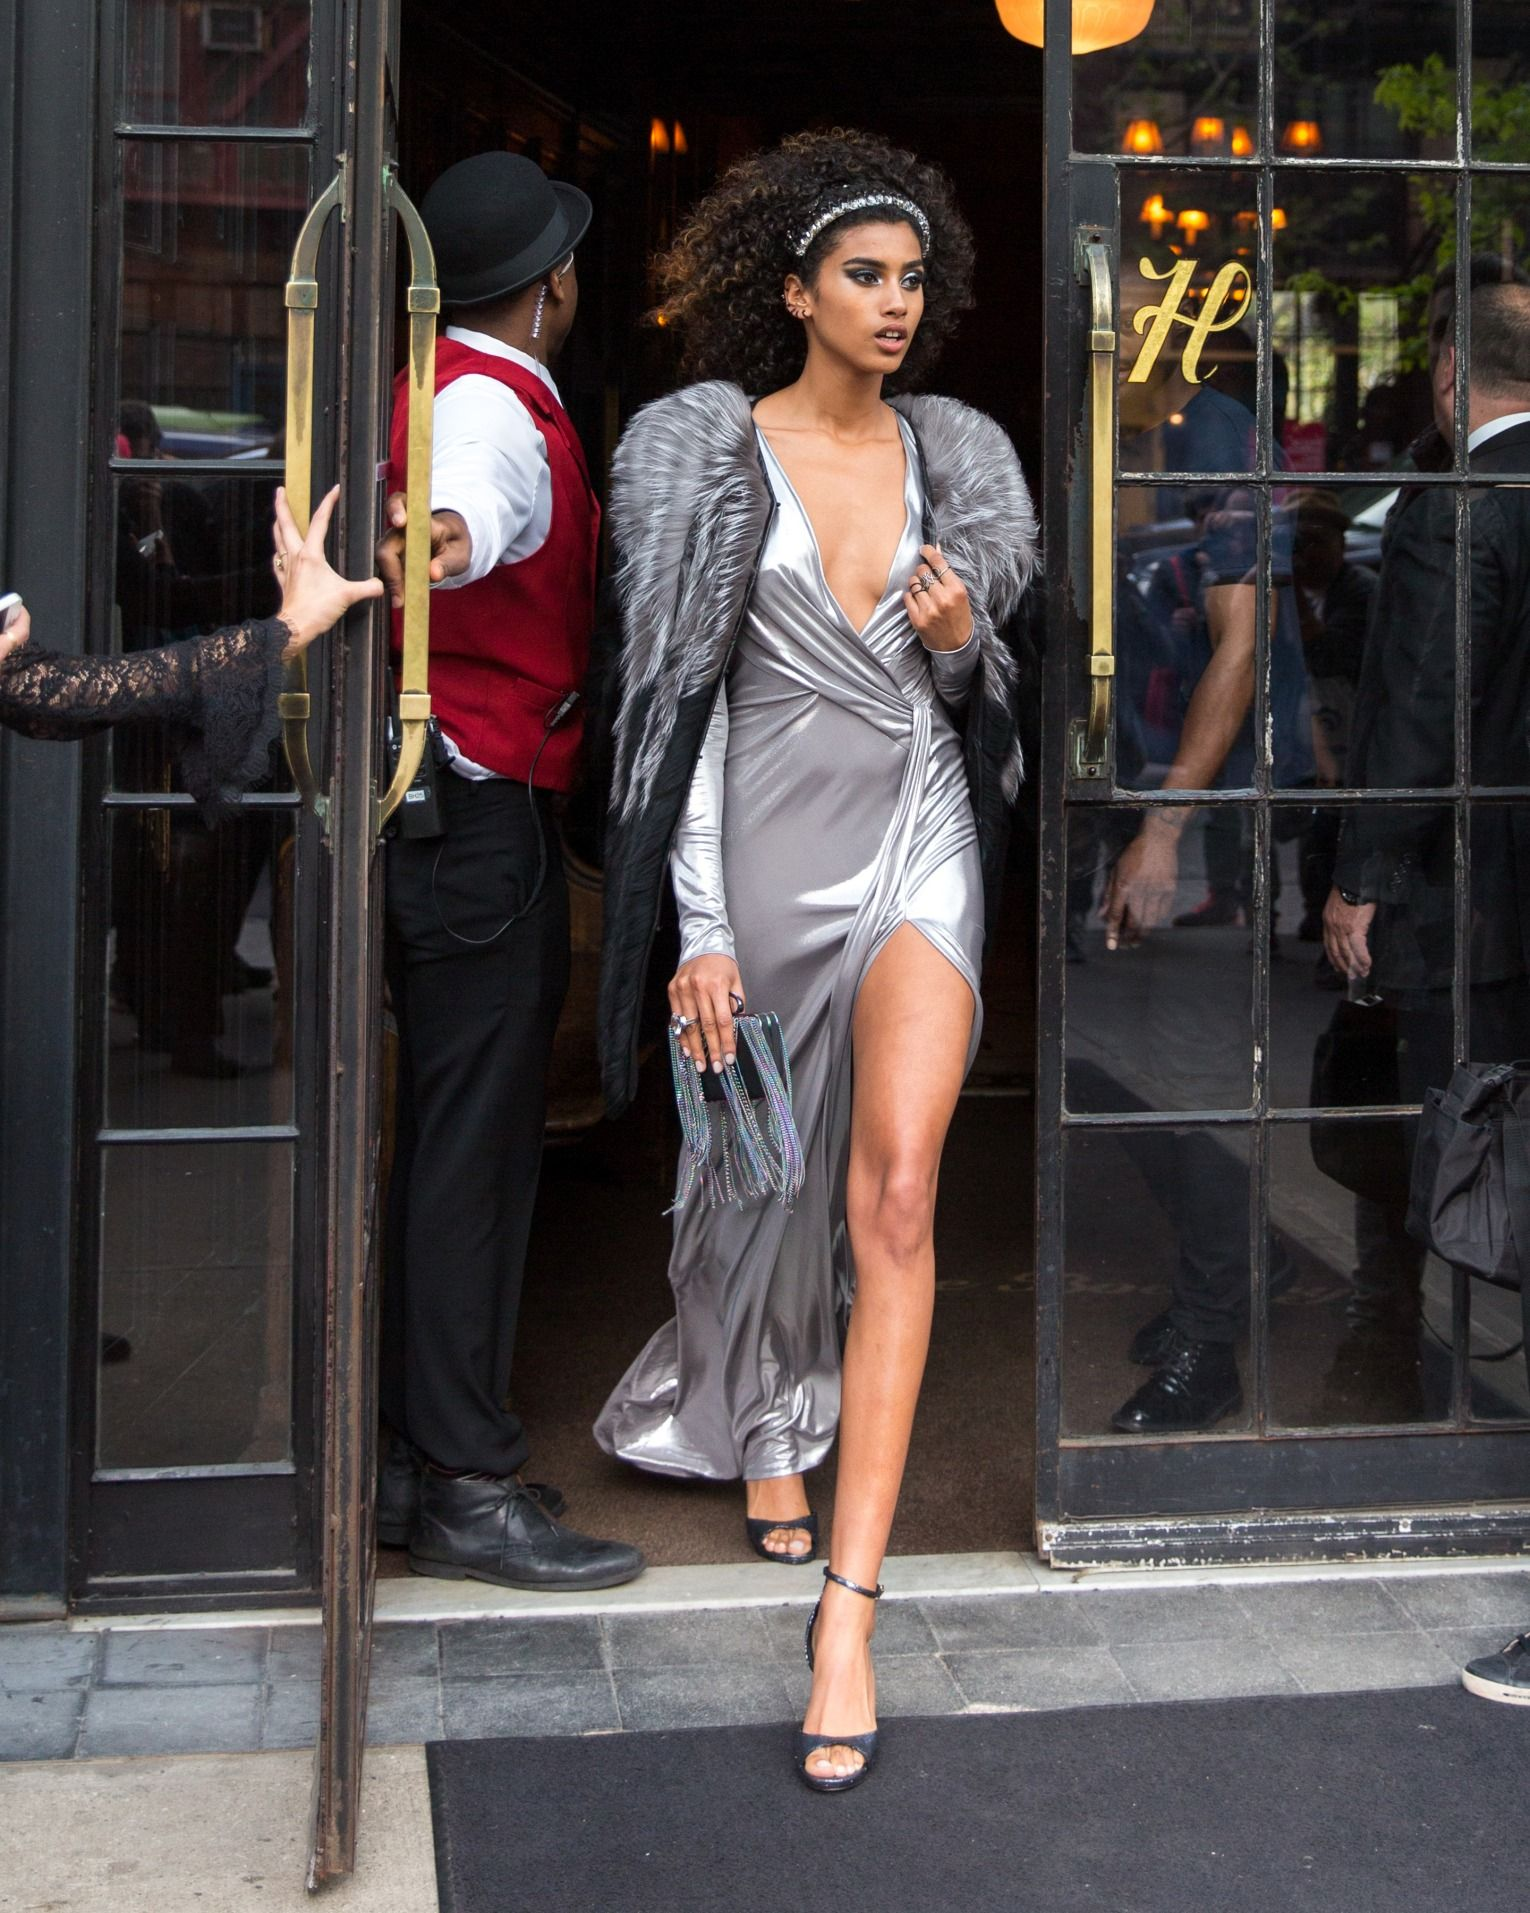 Paparazzi Imaan Hammam naked (44 photo), Topless, Paparazzi, Feet, cameltoe 2020